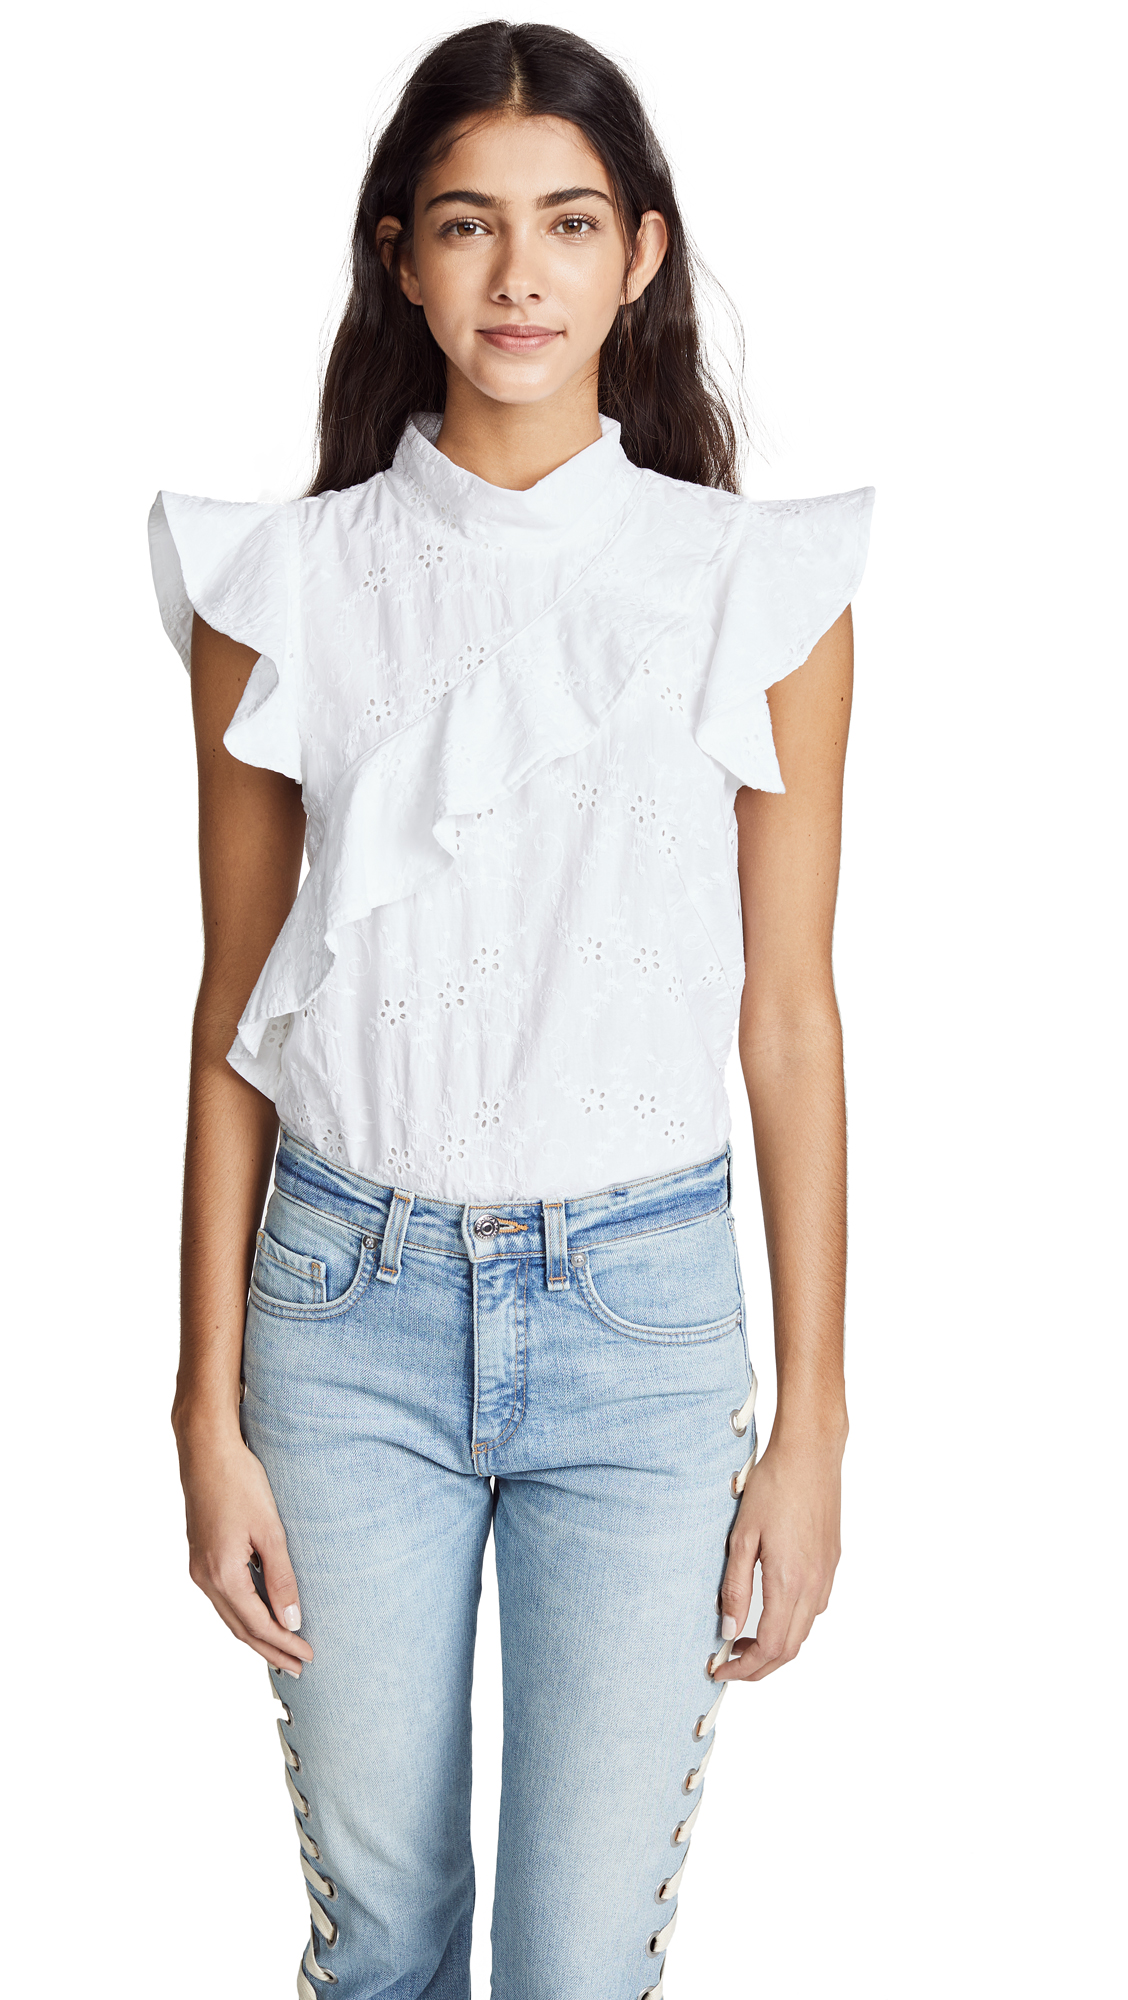 McGuire Denim Sorbonne Top In White Eyelet